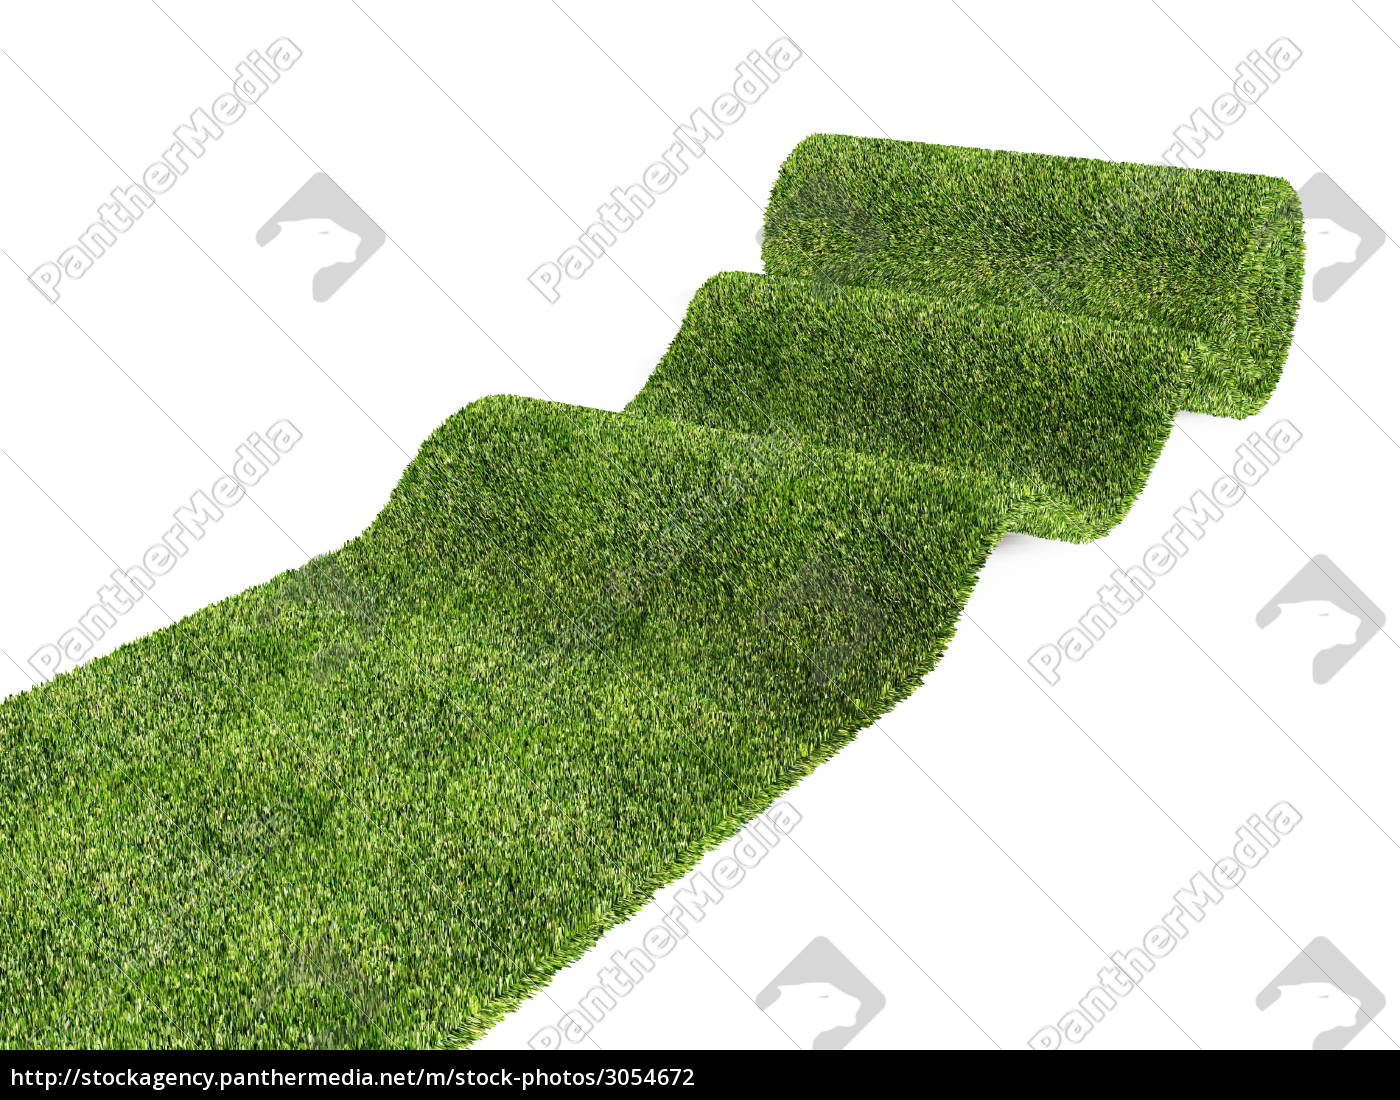 green, carpet - 3054672